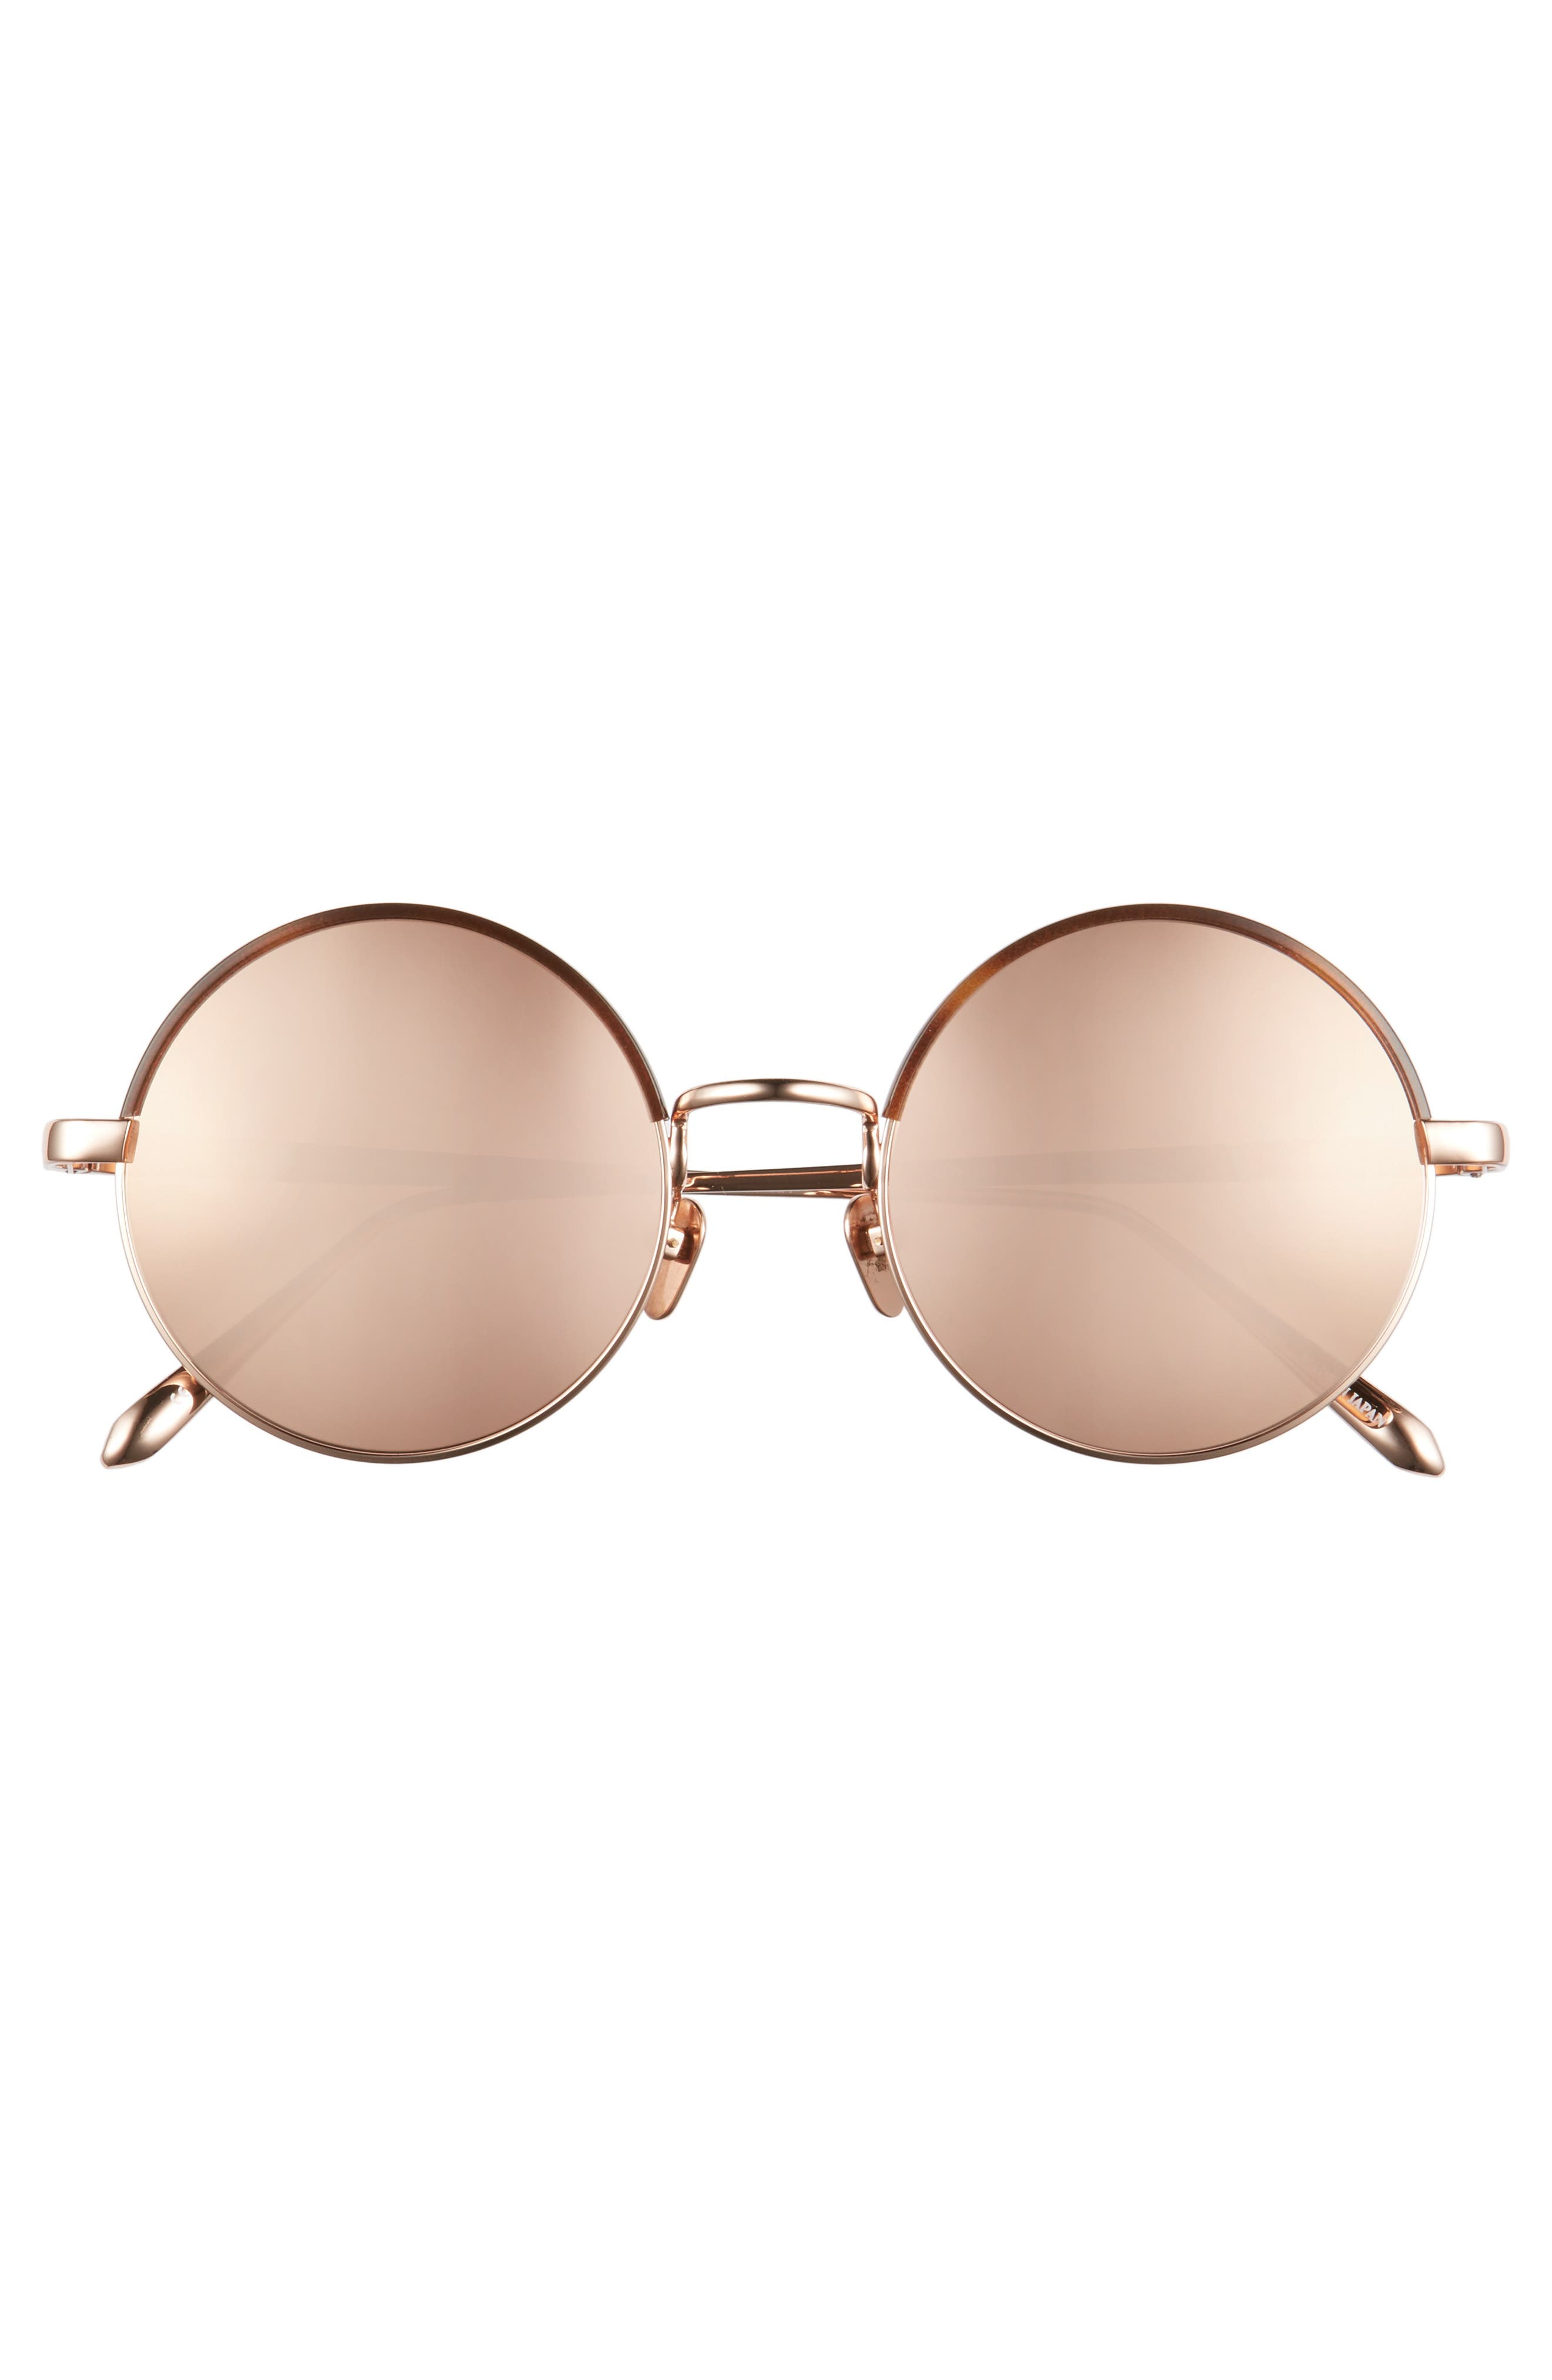 Alternate Image 3  - Linda Farrow 51mm Mirrored 18 Karat Gold Trim Round Sunglasses